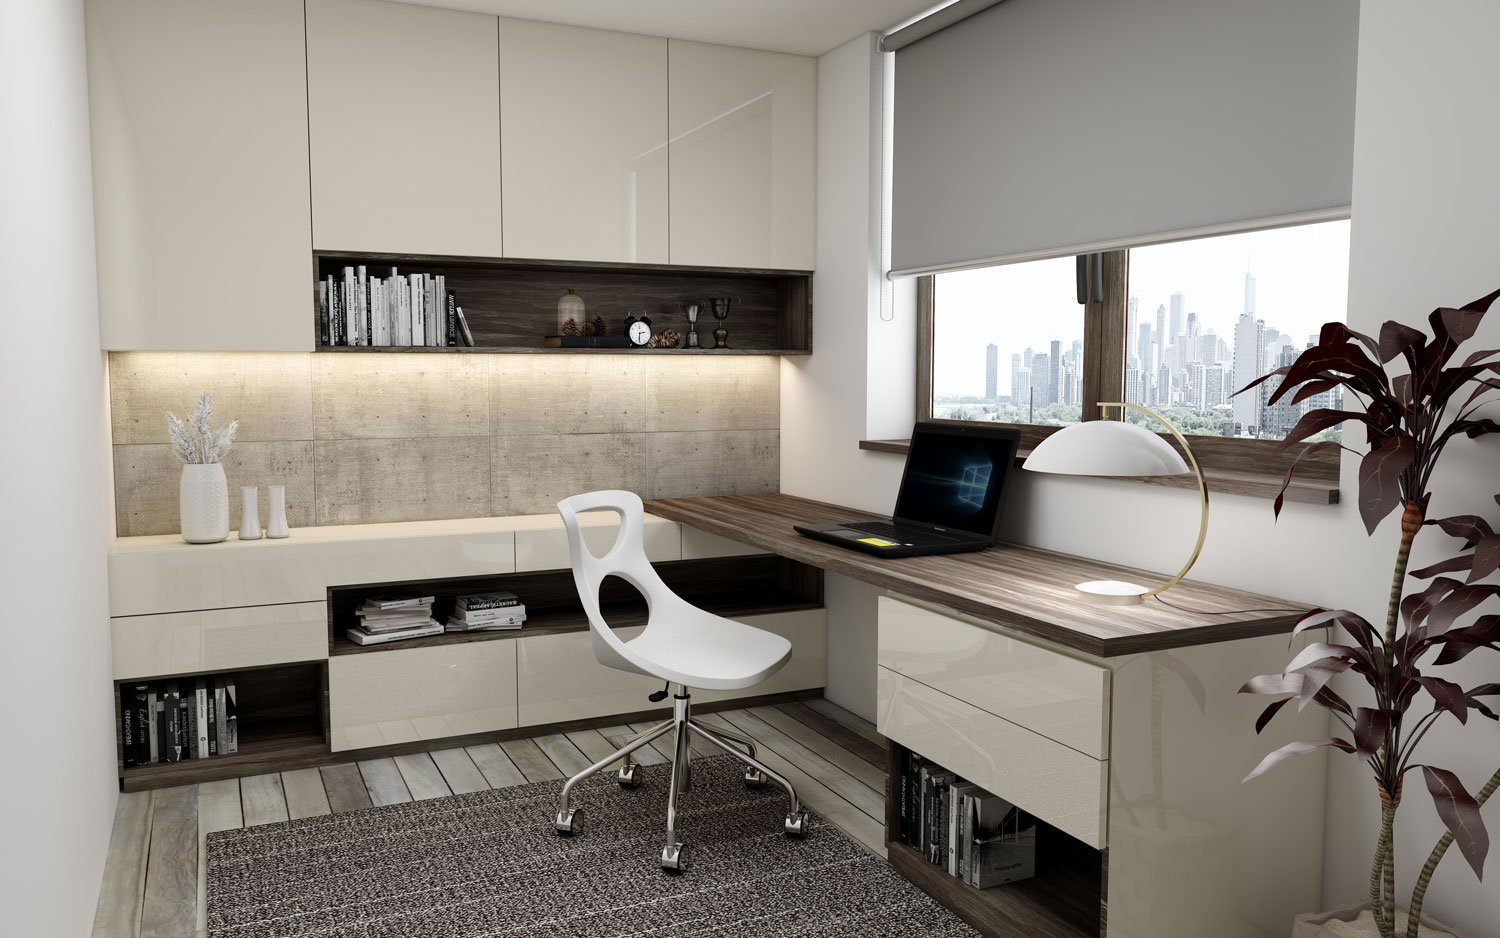 Study Office Finished With a Combination of Oper Walnut Woodgrain and Cashmere High Gloss